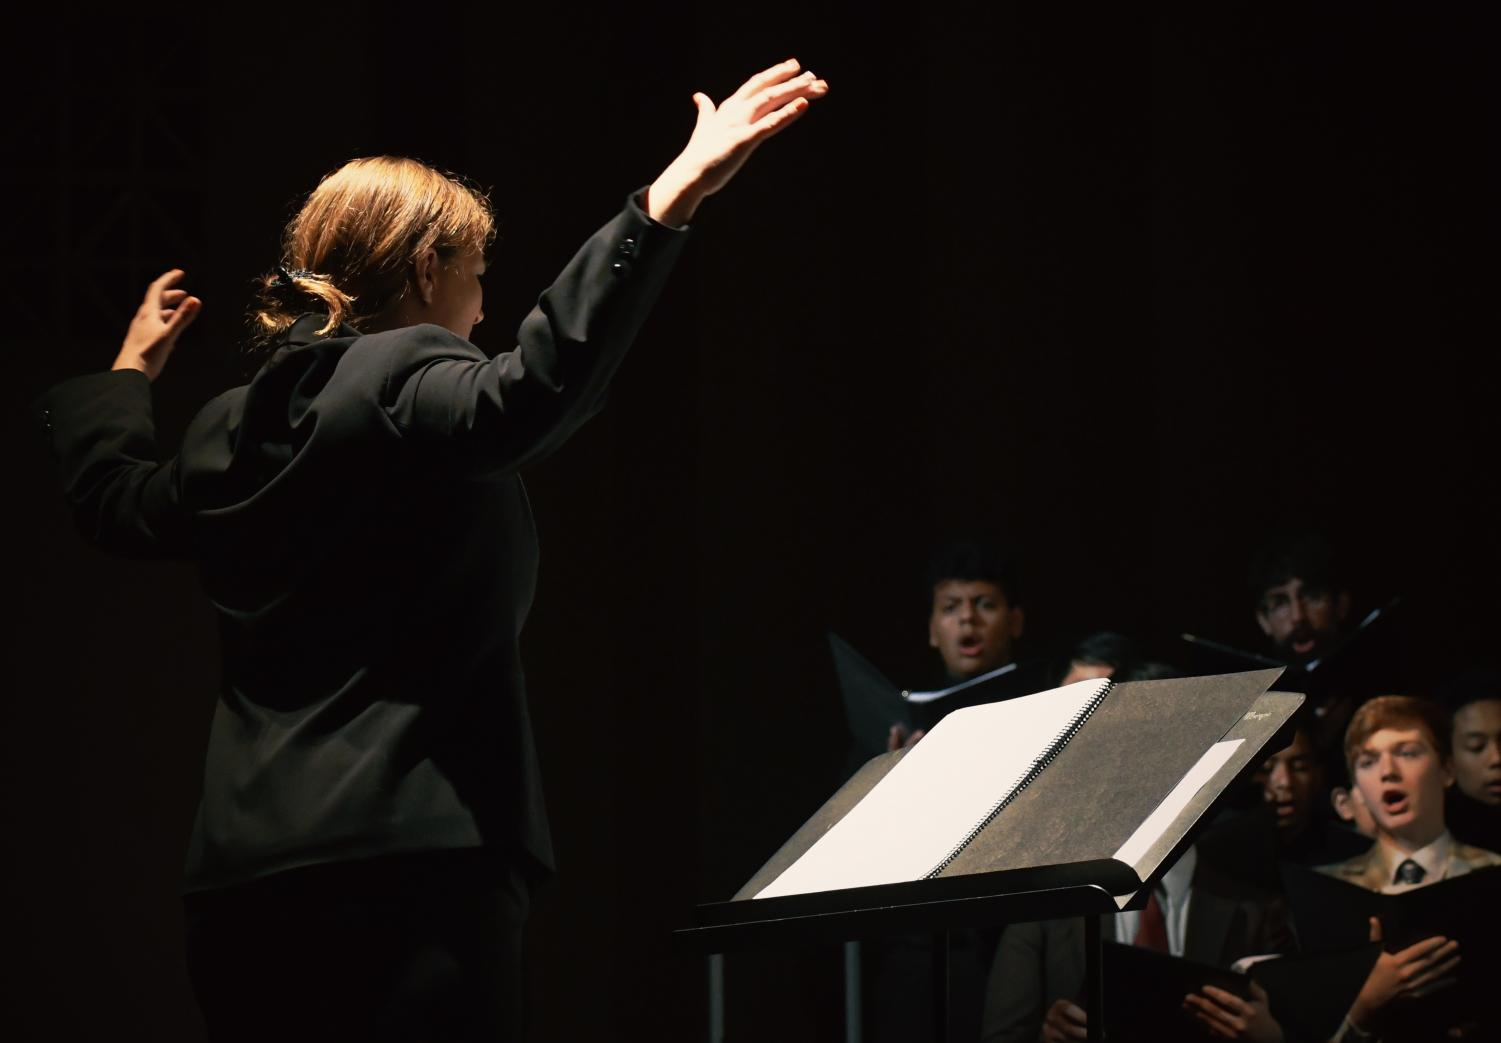 Brianne Arevalo conducts her vocalists.